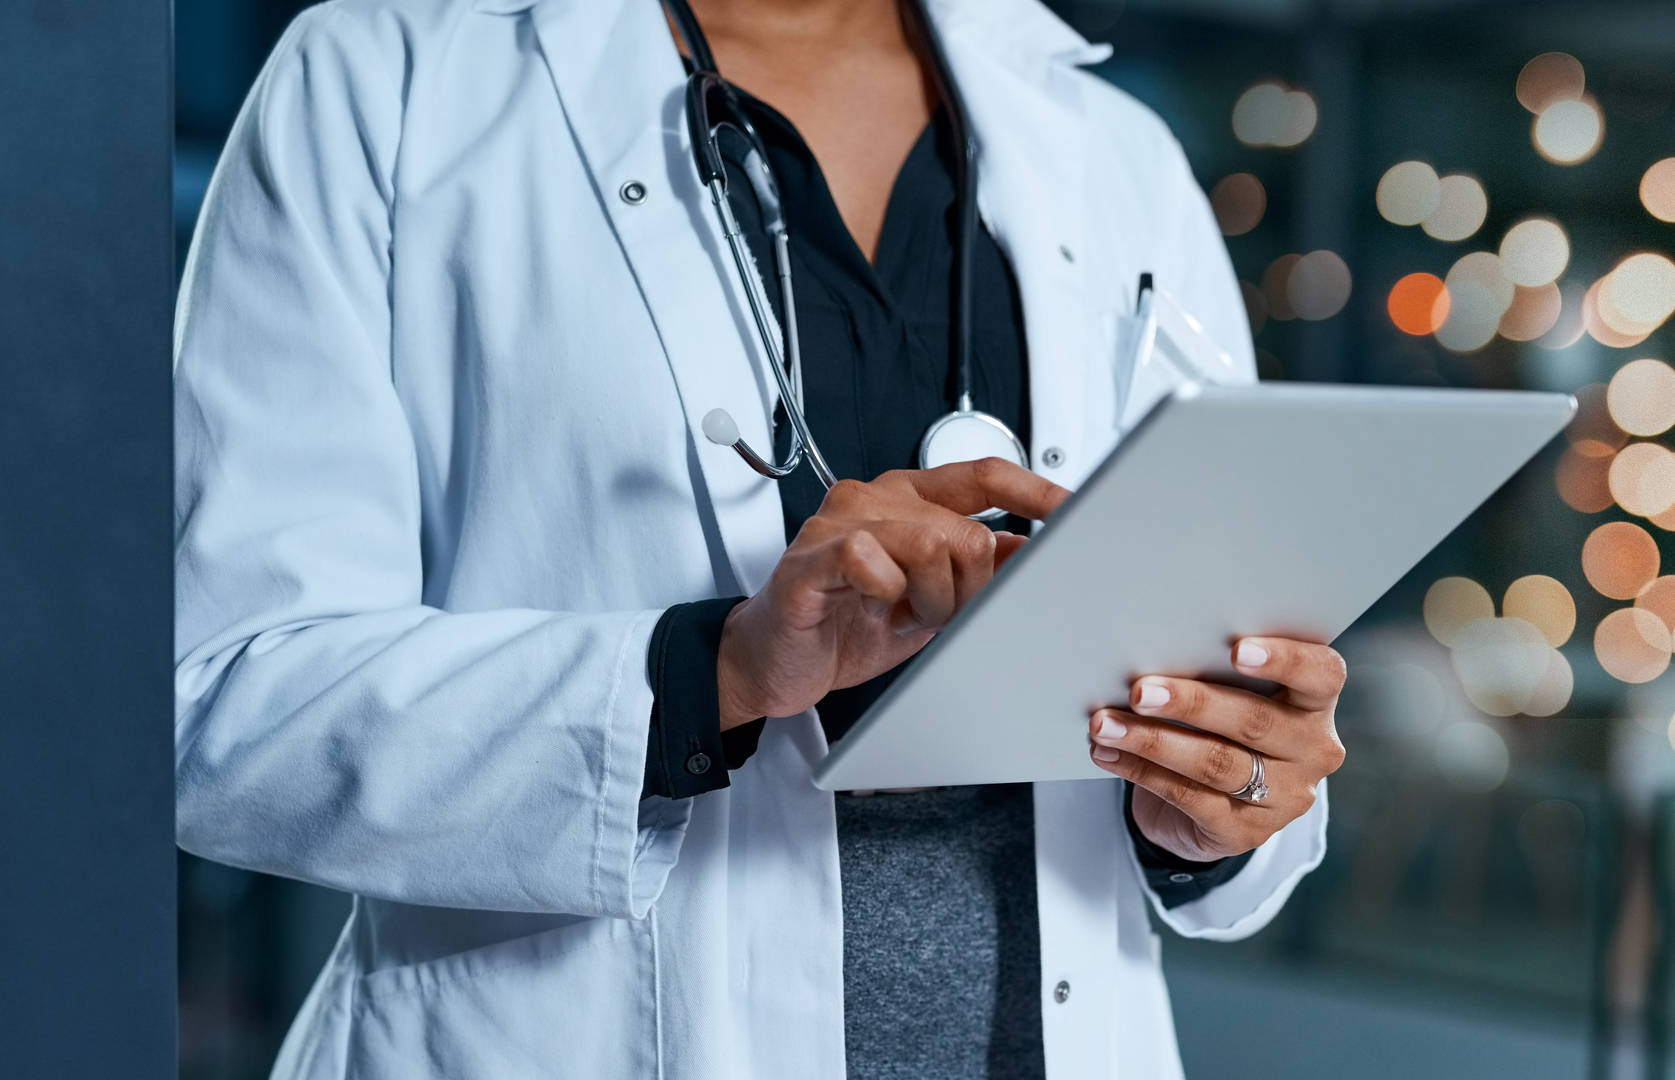 Doctor looking at iPad